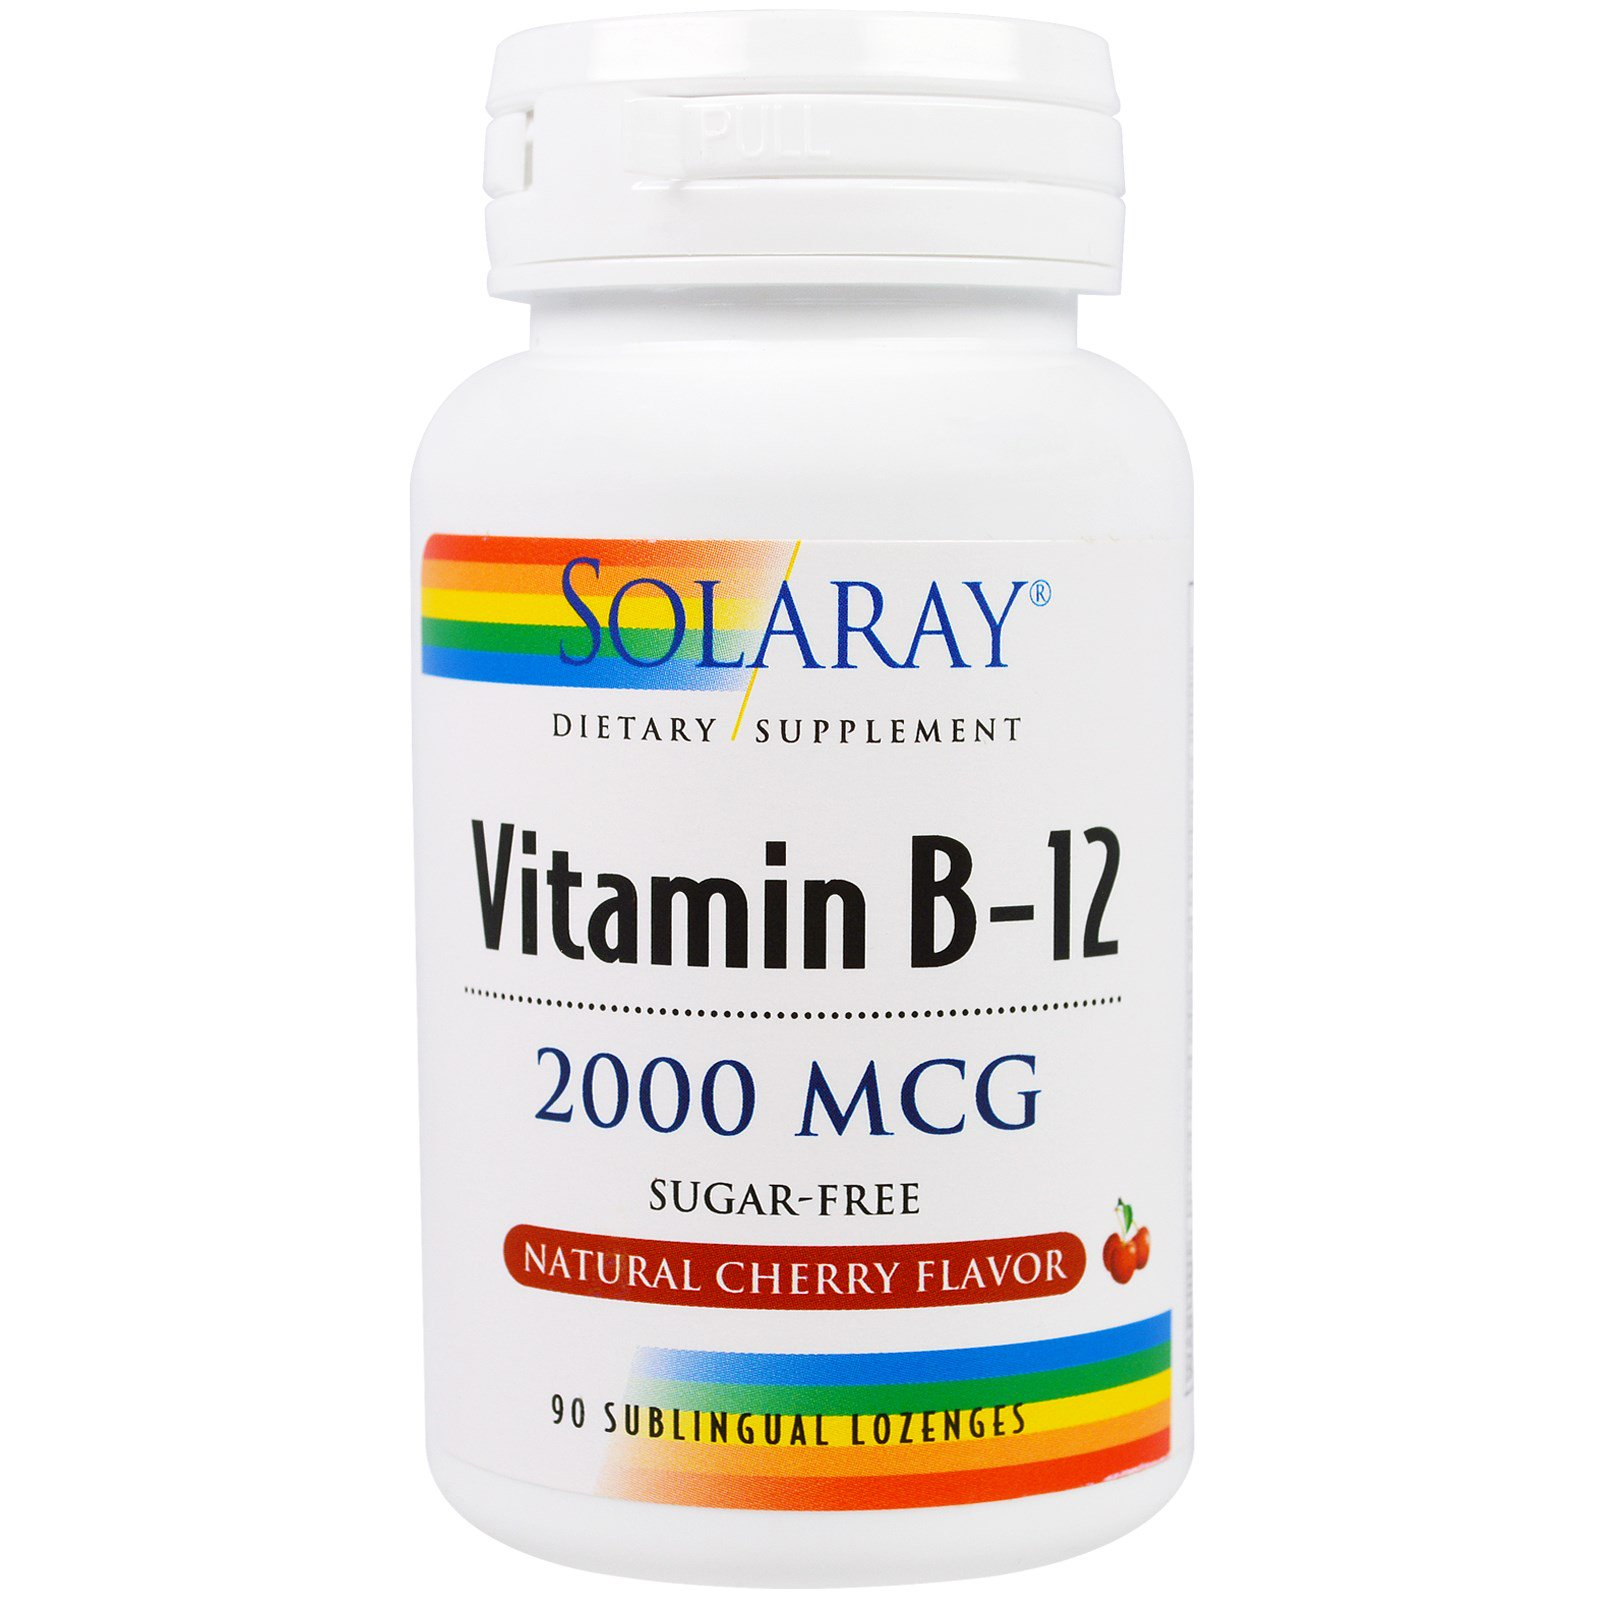 Solaray, Vitamin B-12, Natural Cherry Flavor, Sugar Free, 2000 mcg, 90 Sublingual LozengesOther